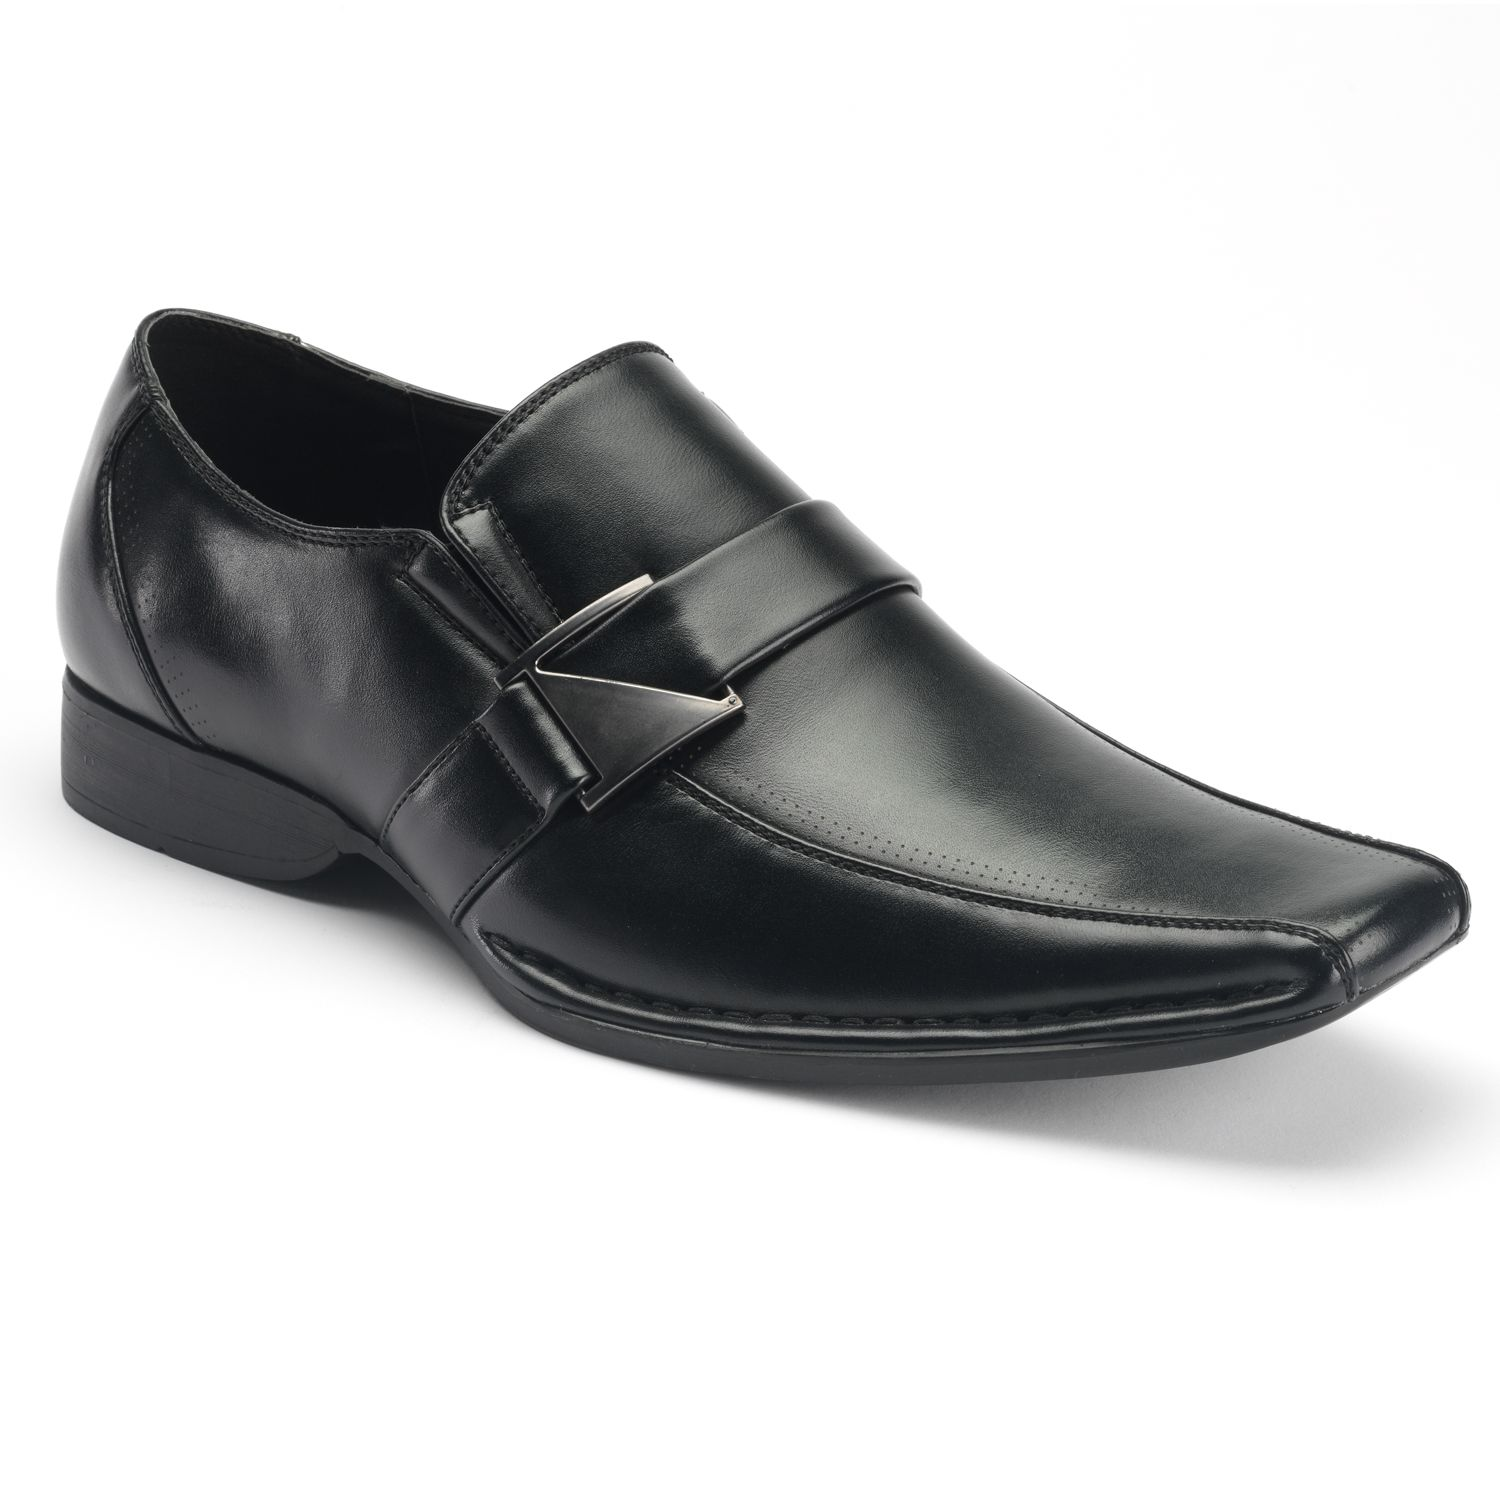 Apt 9 black dress shoes urban